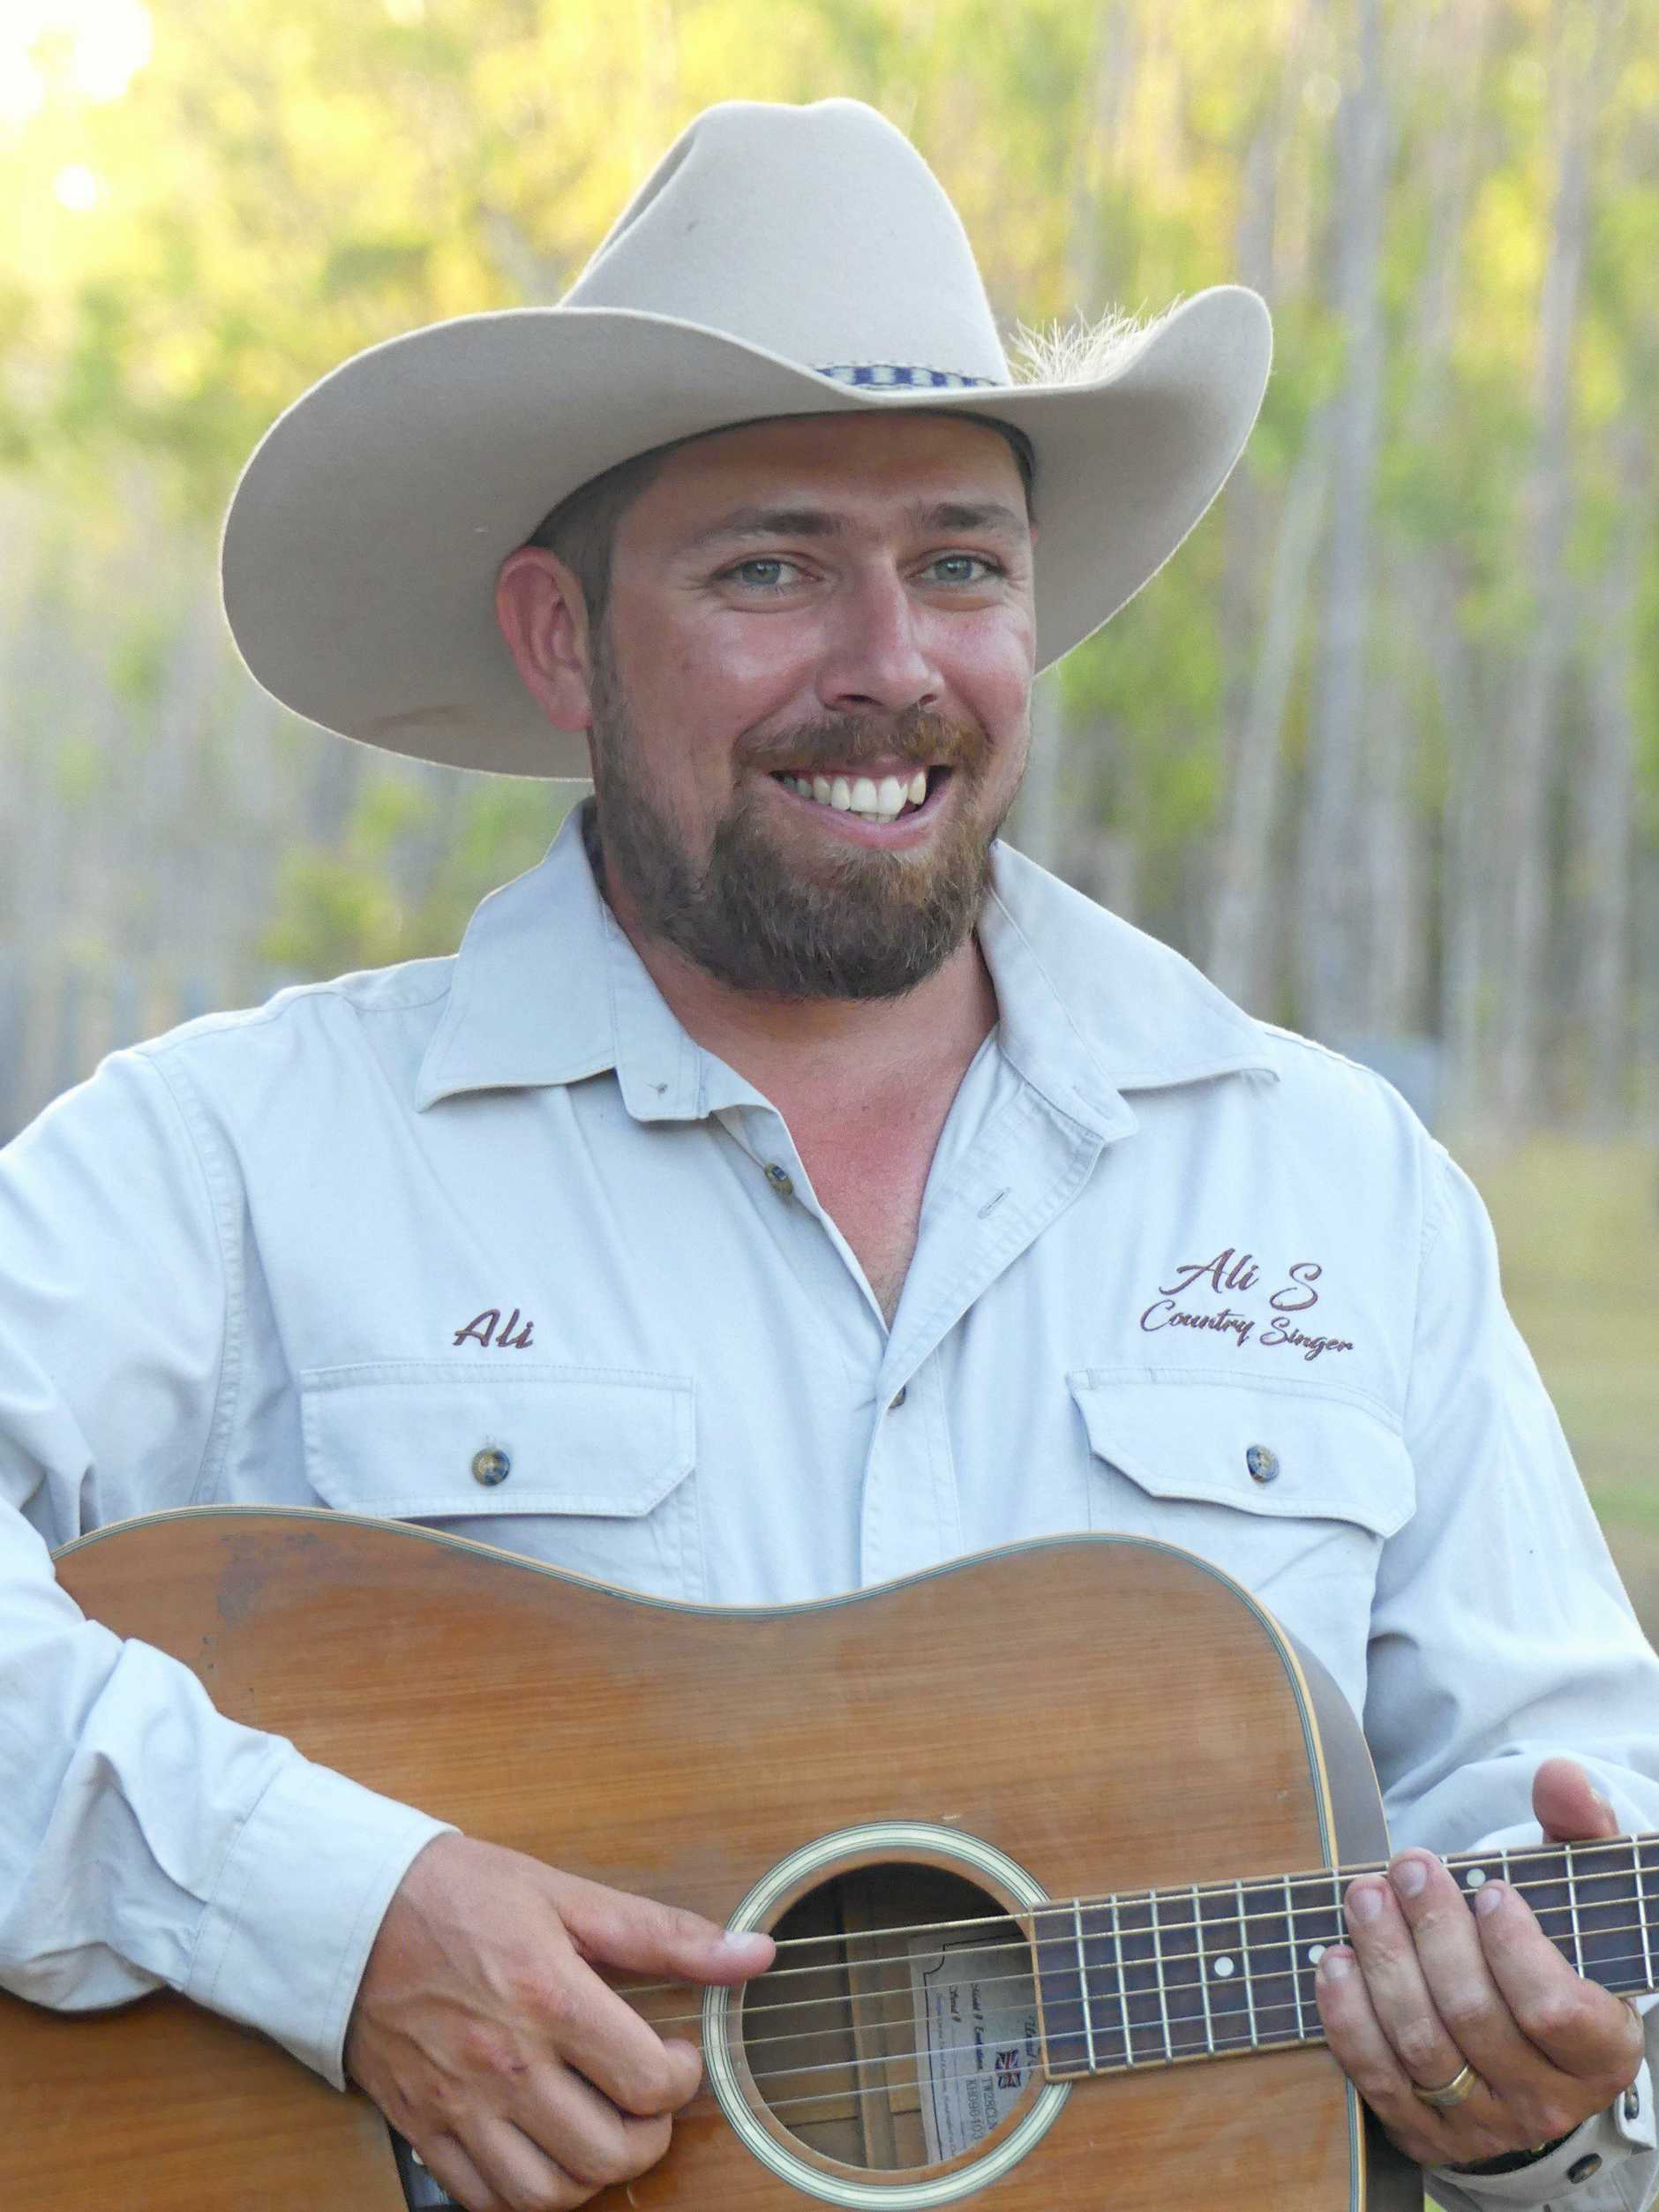 BACK-TO-BACK: Hervey Bay country music artist Ali Sacipovic is a semi-finalist in the Gympie Music Muster Talent Search for the second year in a row.